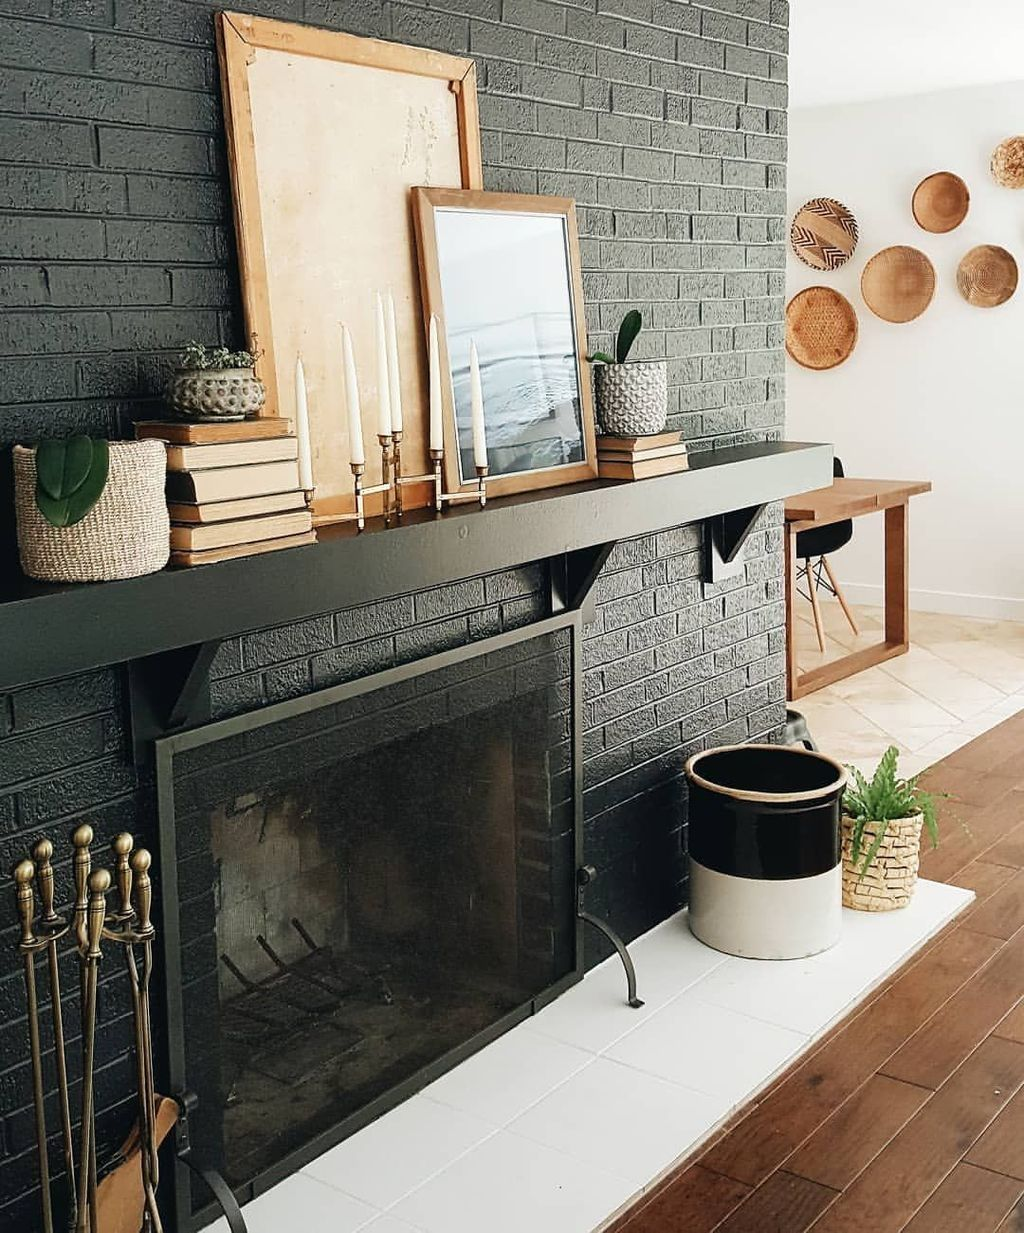 50 Awesome Fireplace Design Ideas For Small Houses Brick